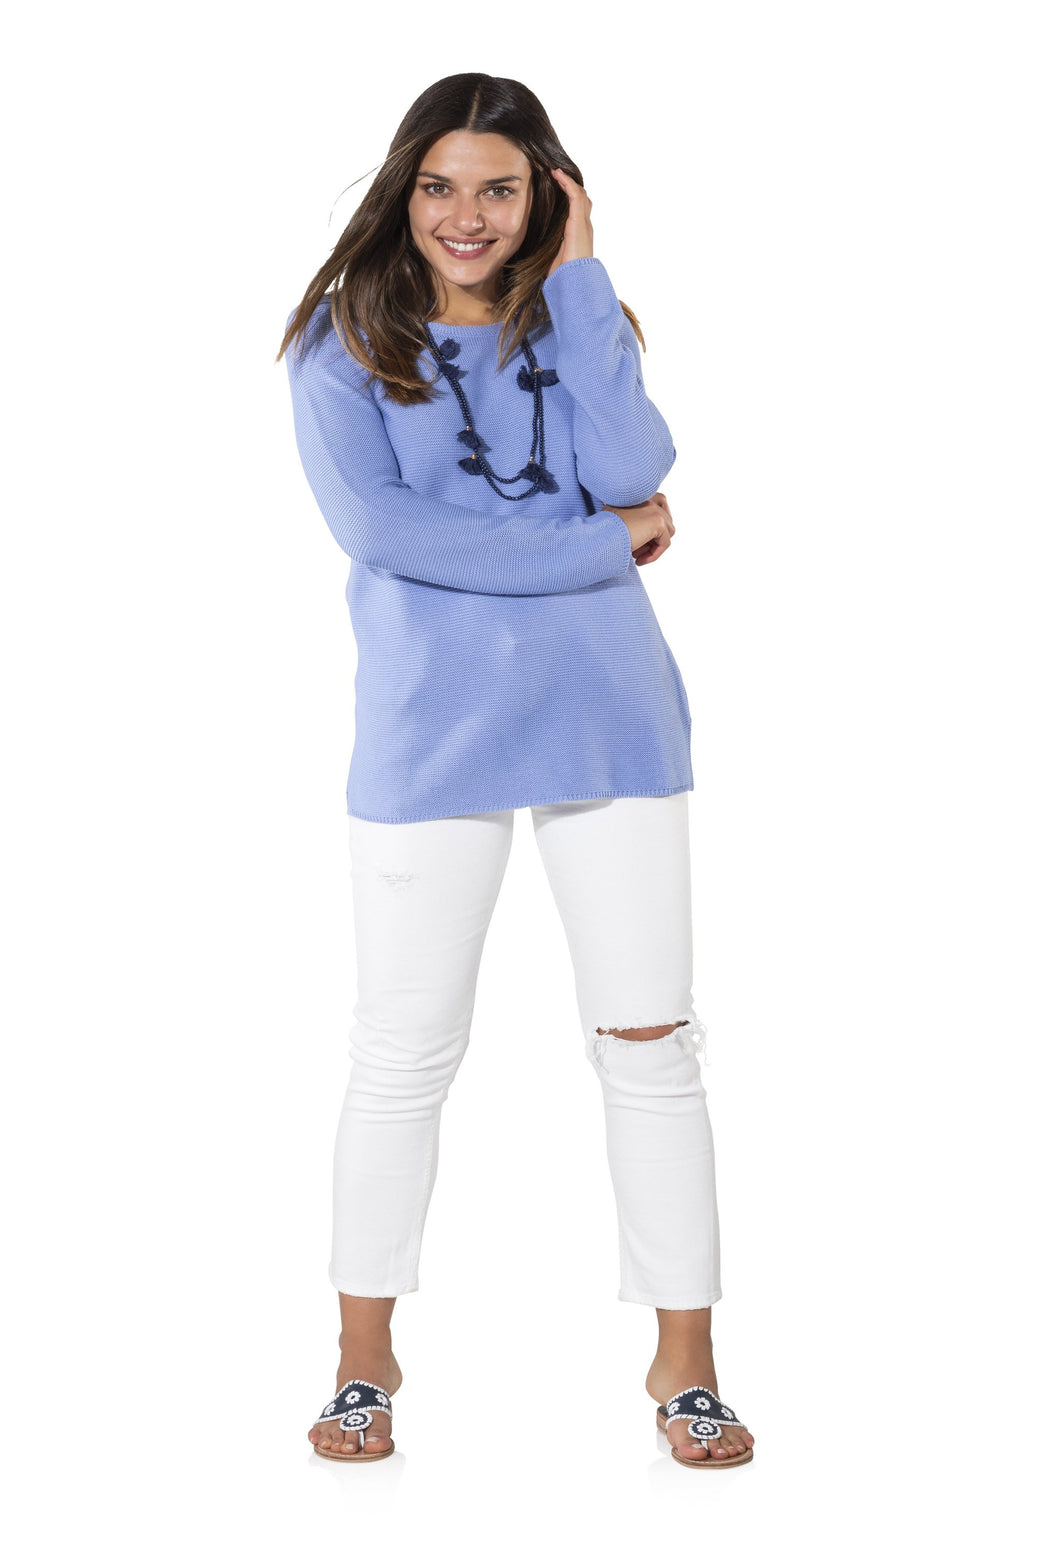 Long Sleeved Sweater in Periwinkle by Sail to Sable